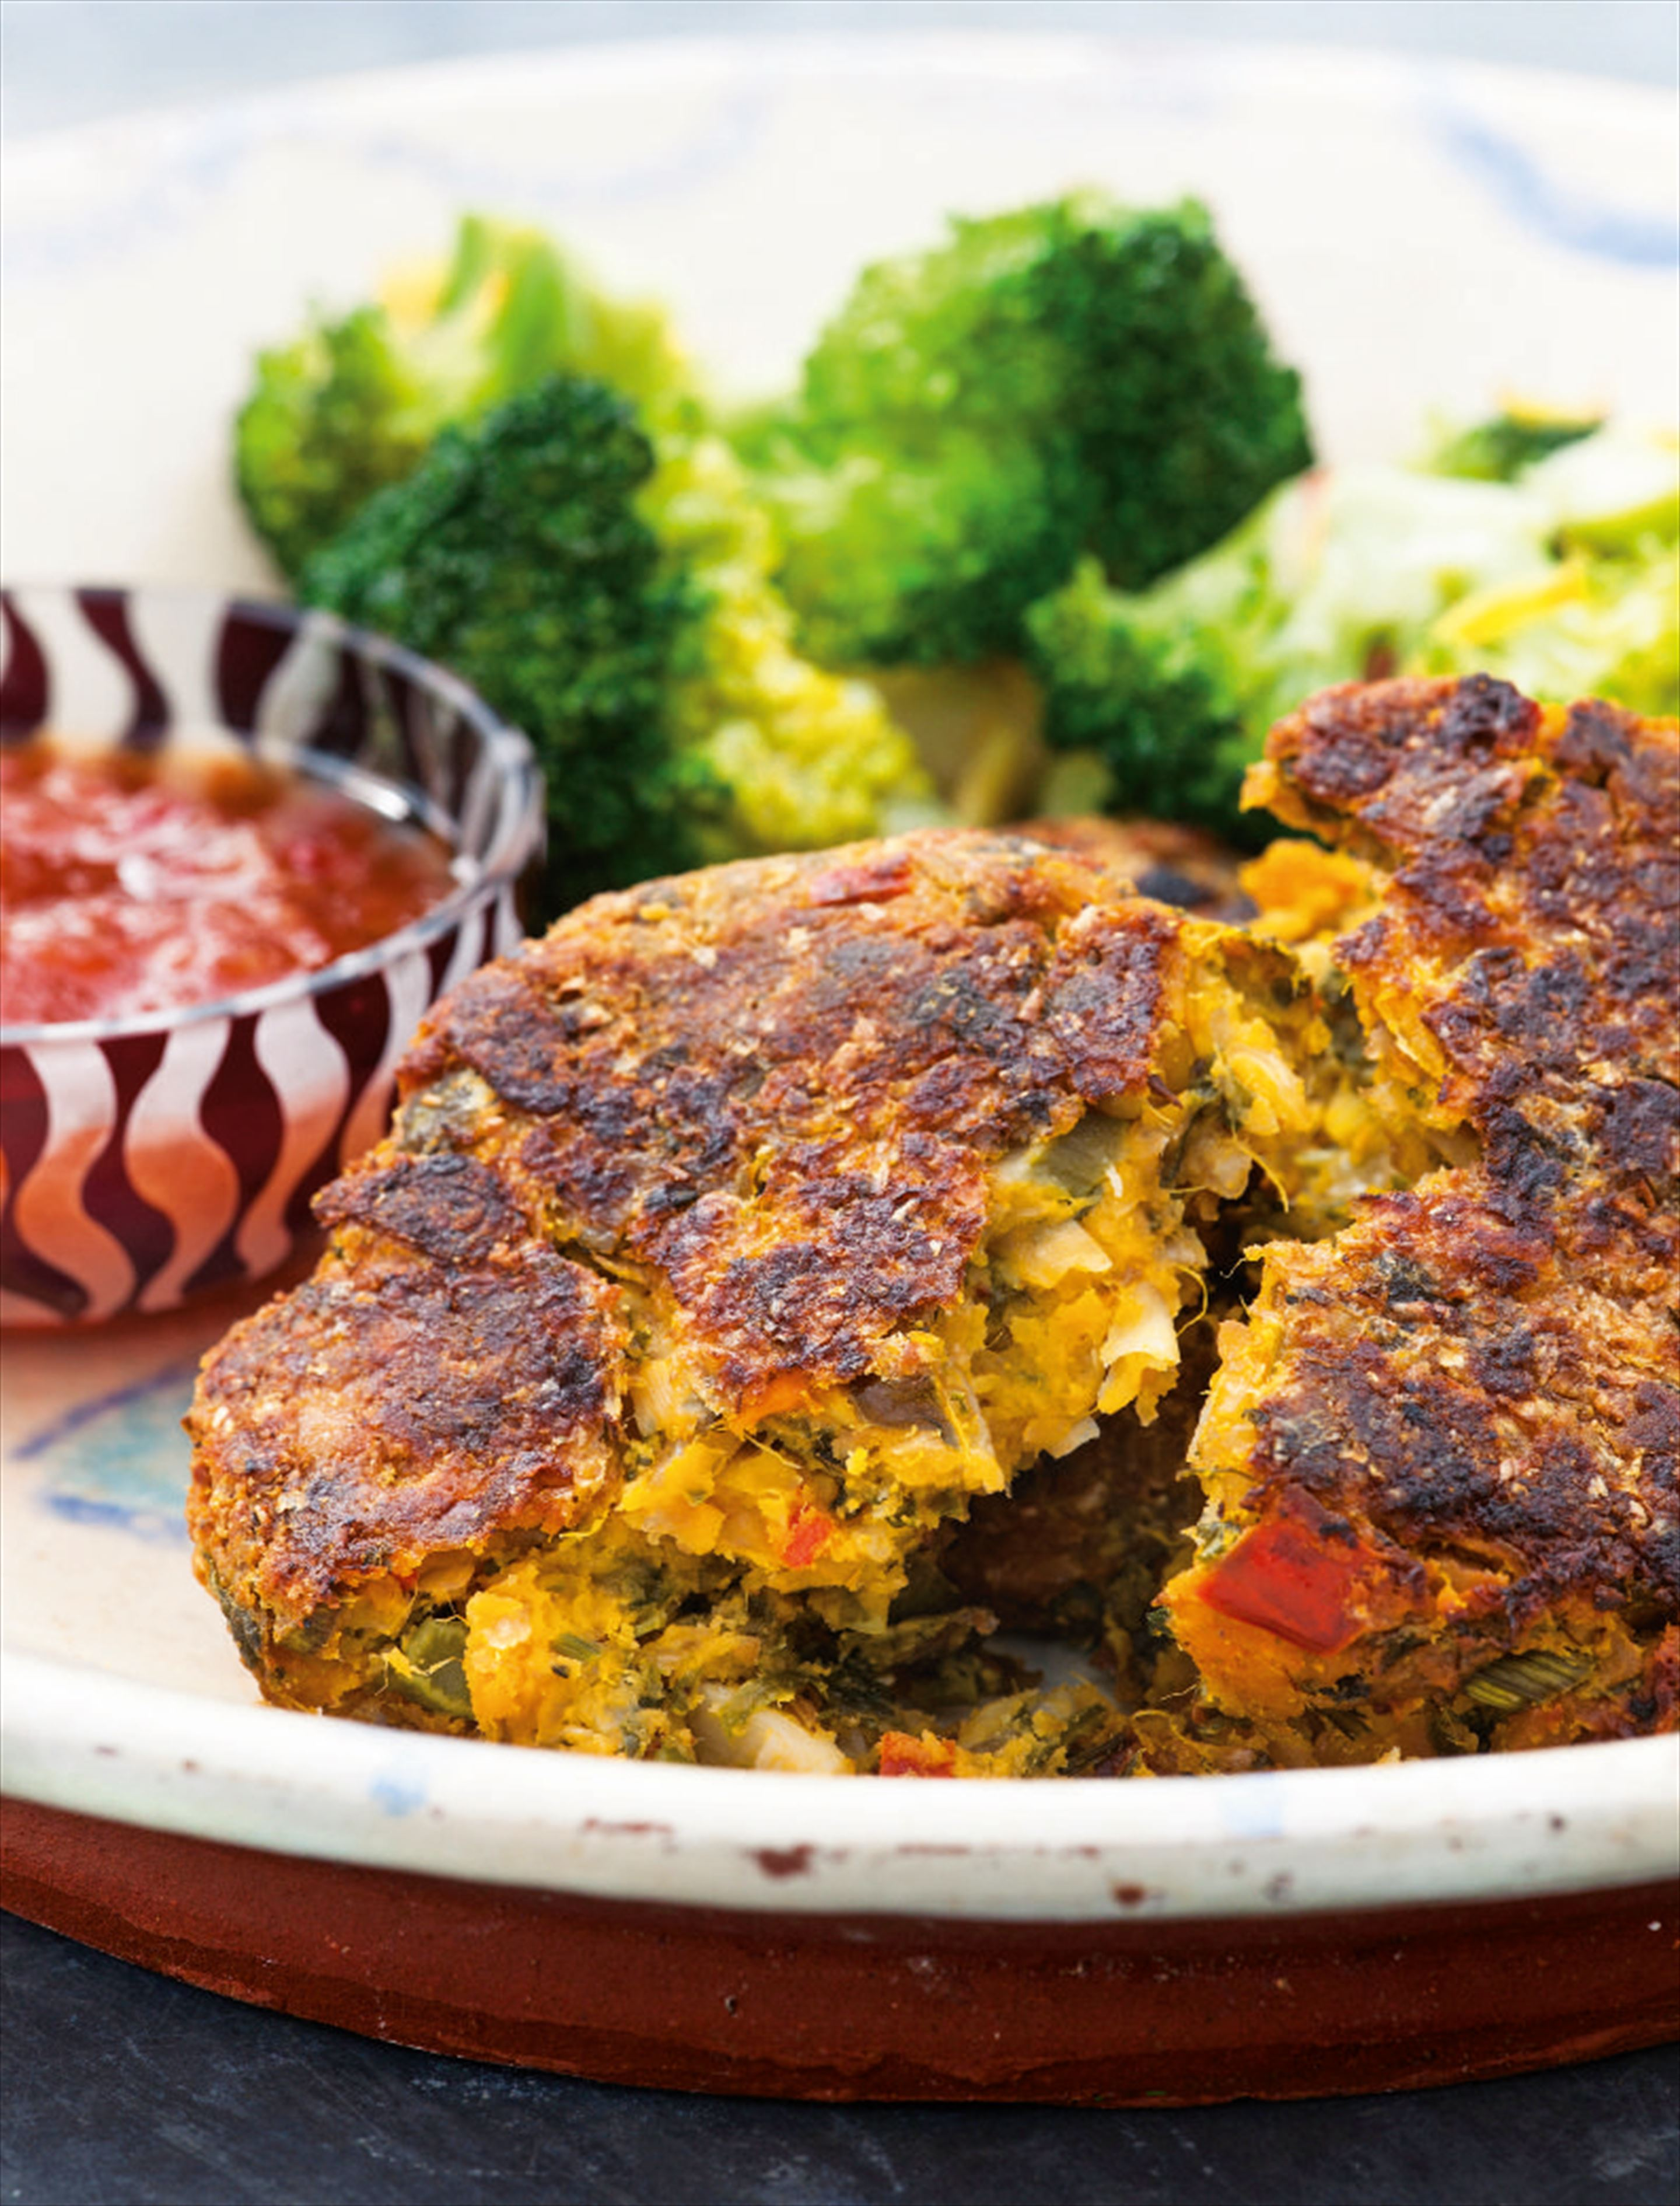 Sweet potato, broccoli, feta and red kale burgers